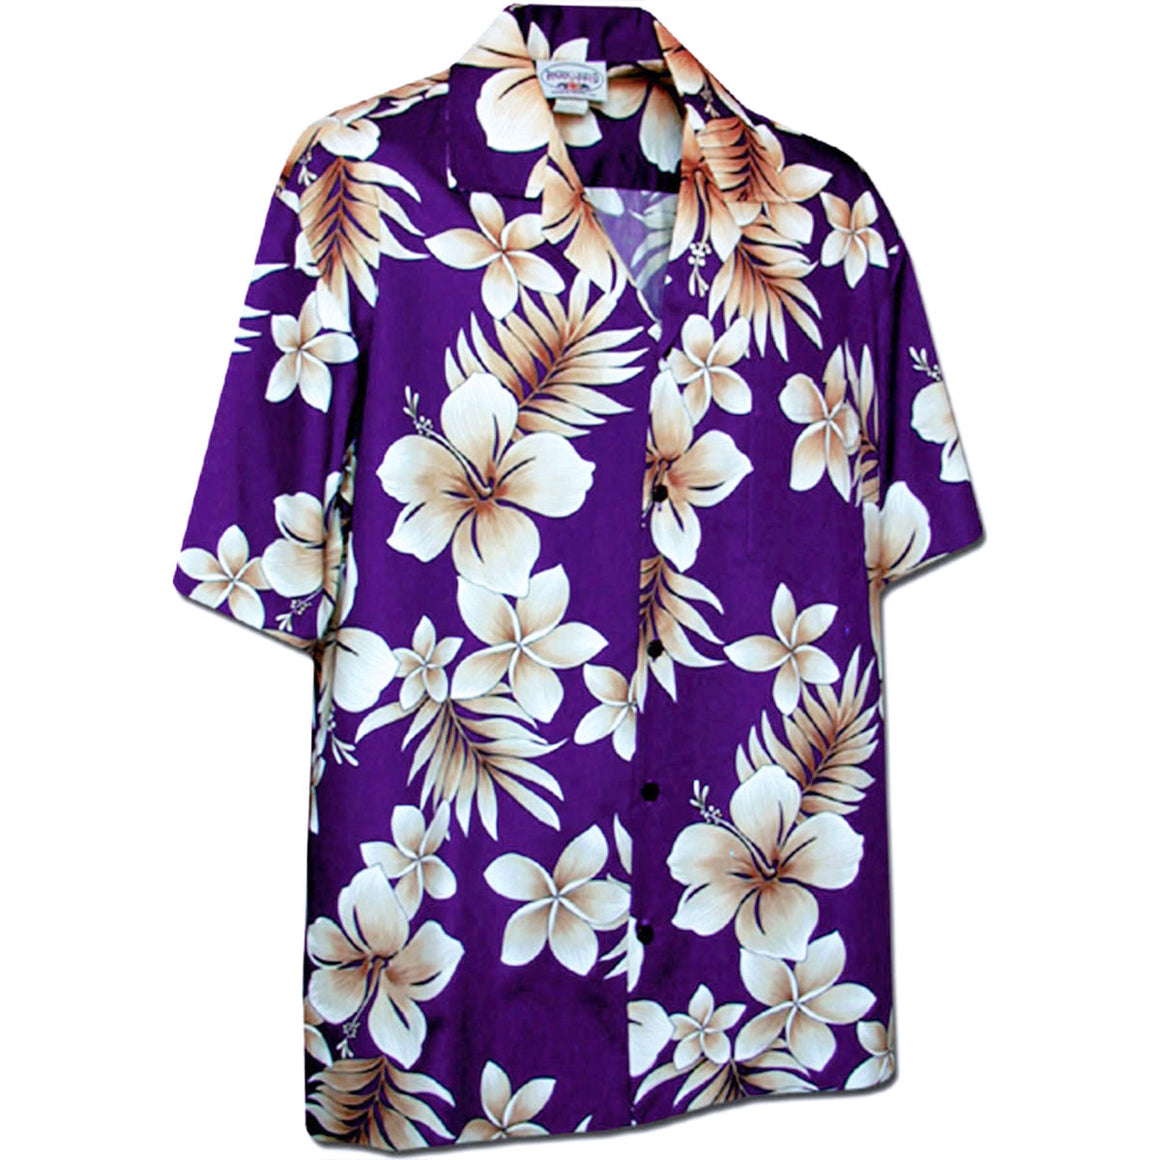 Tropic Fever Purple Hawaiian Shirt